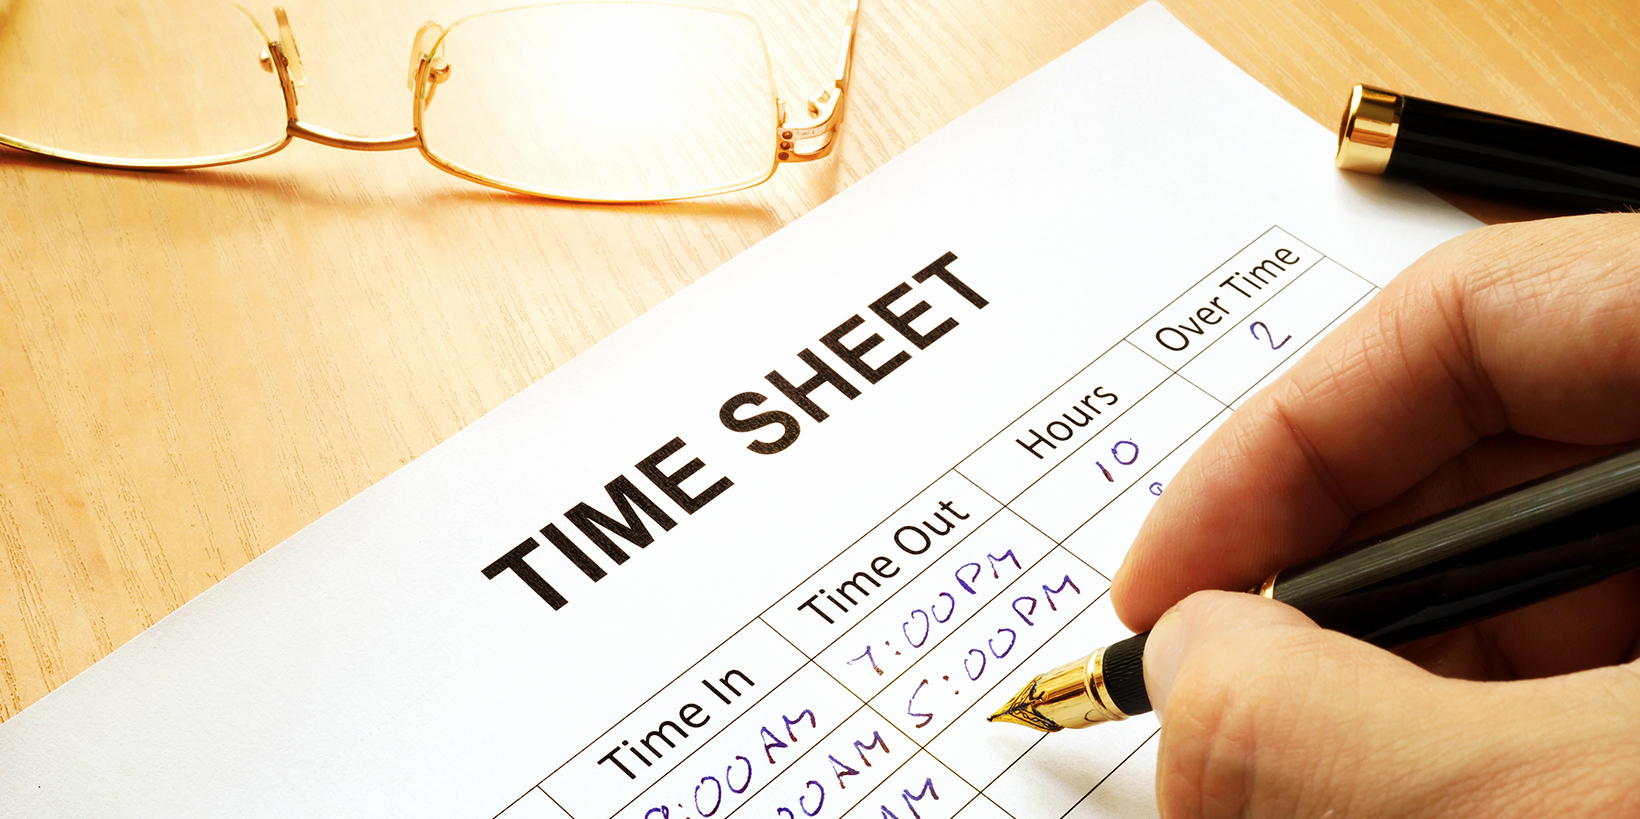 Adt Time Sheet